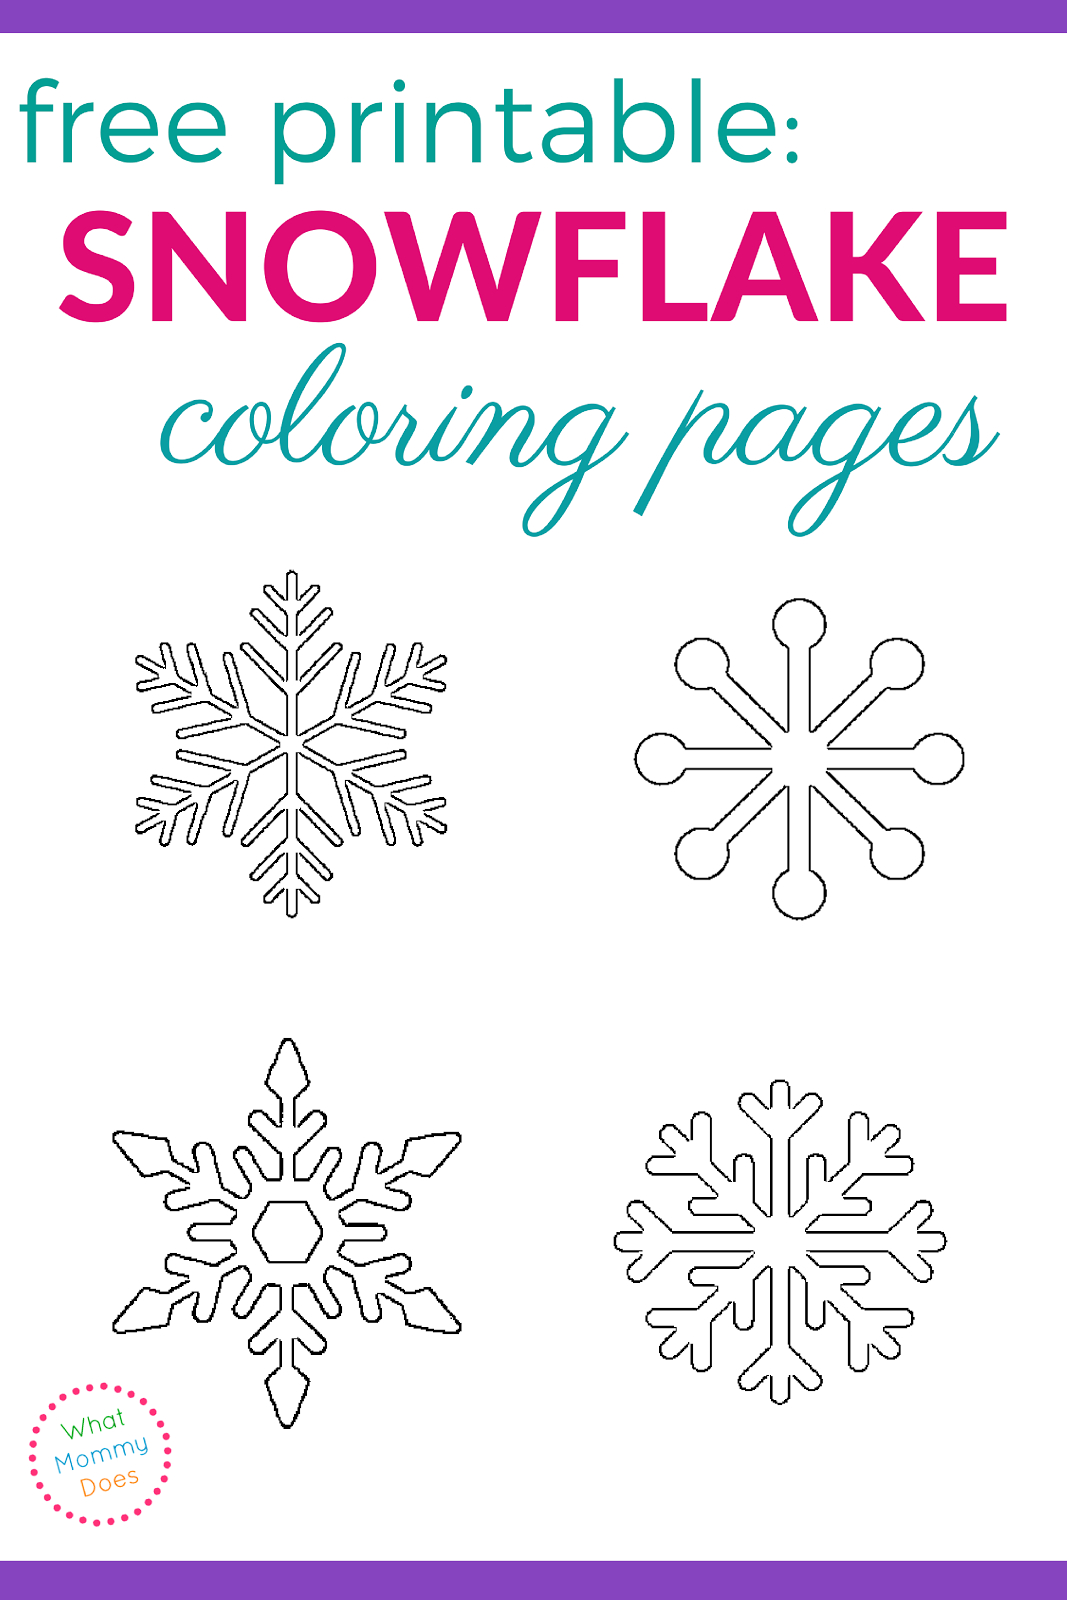 Printable Snowflake Coloring Pages | Download | Snowflake Coloring - Free Snowflake Printable Coloring Pages